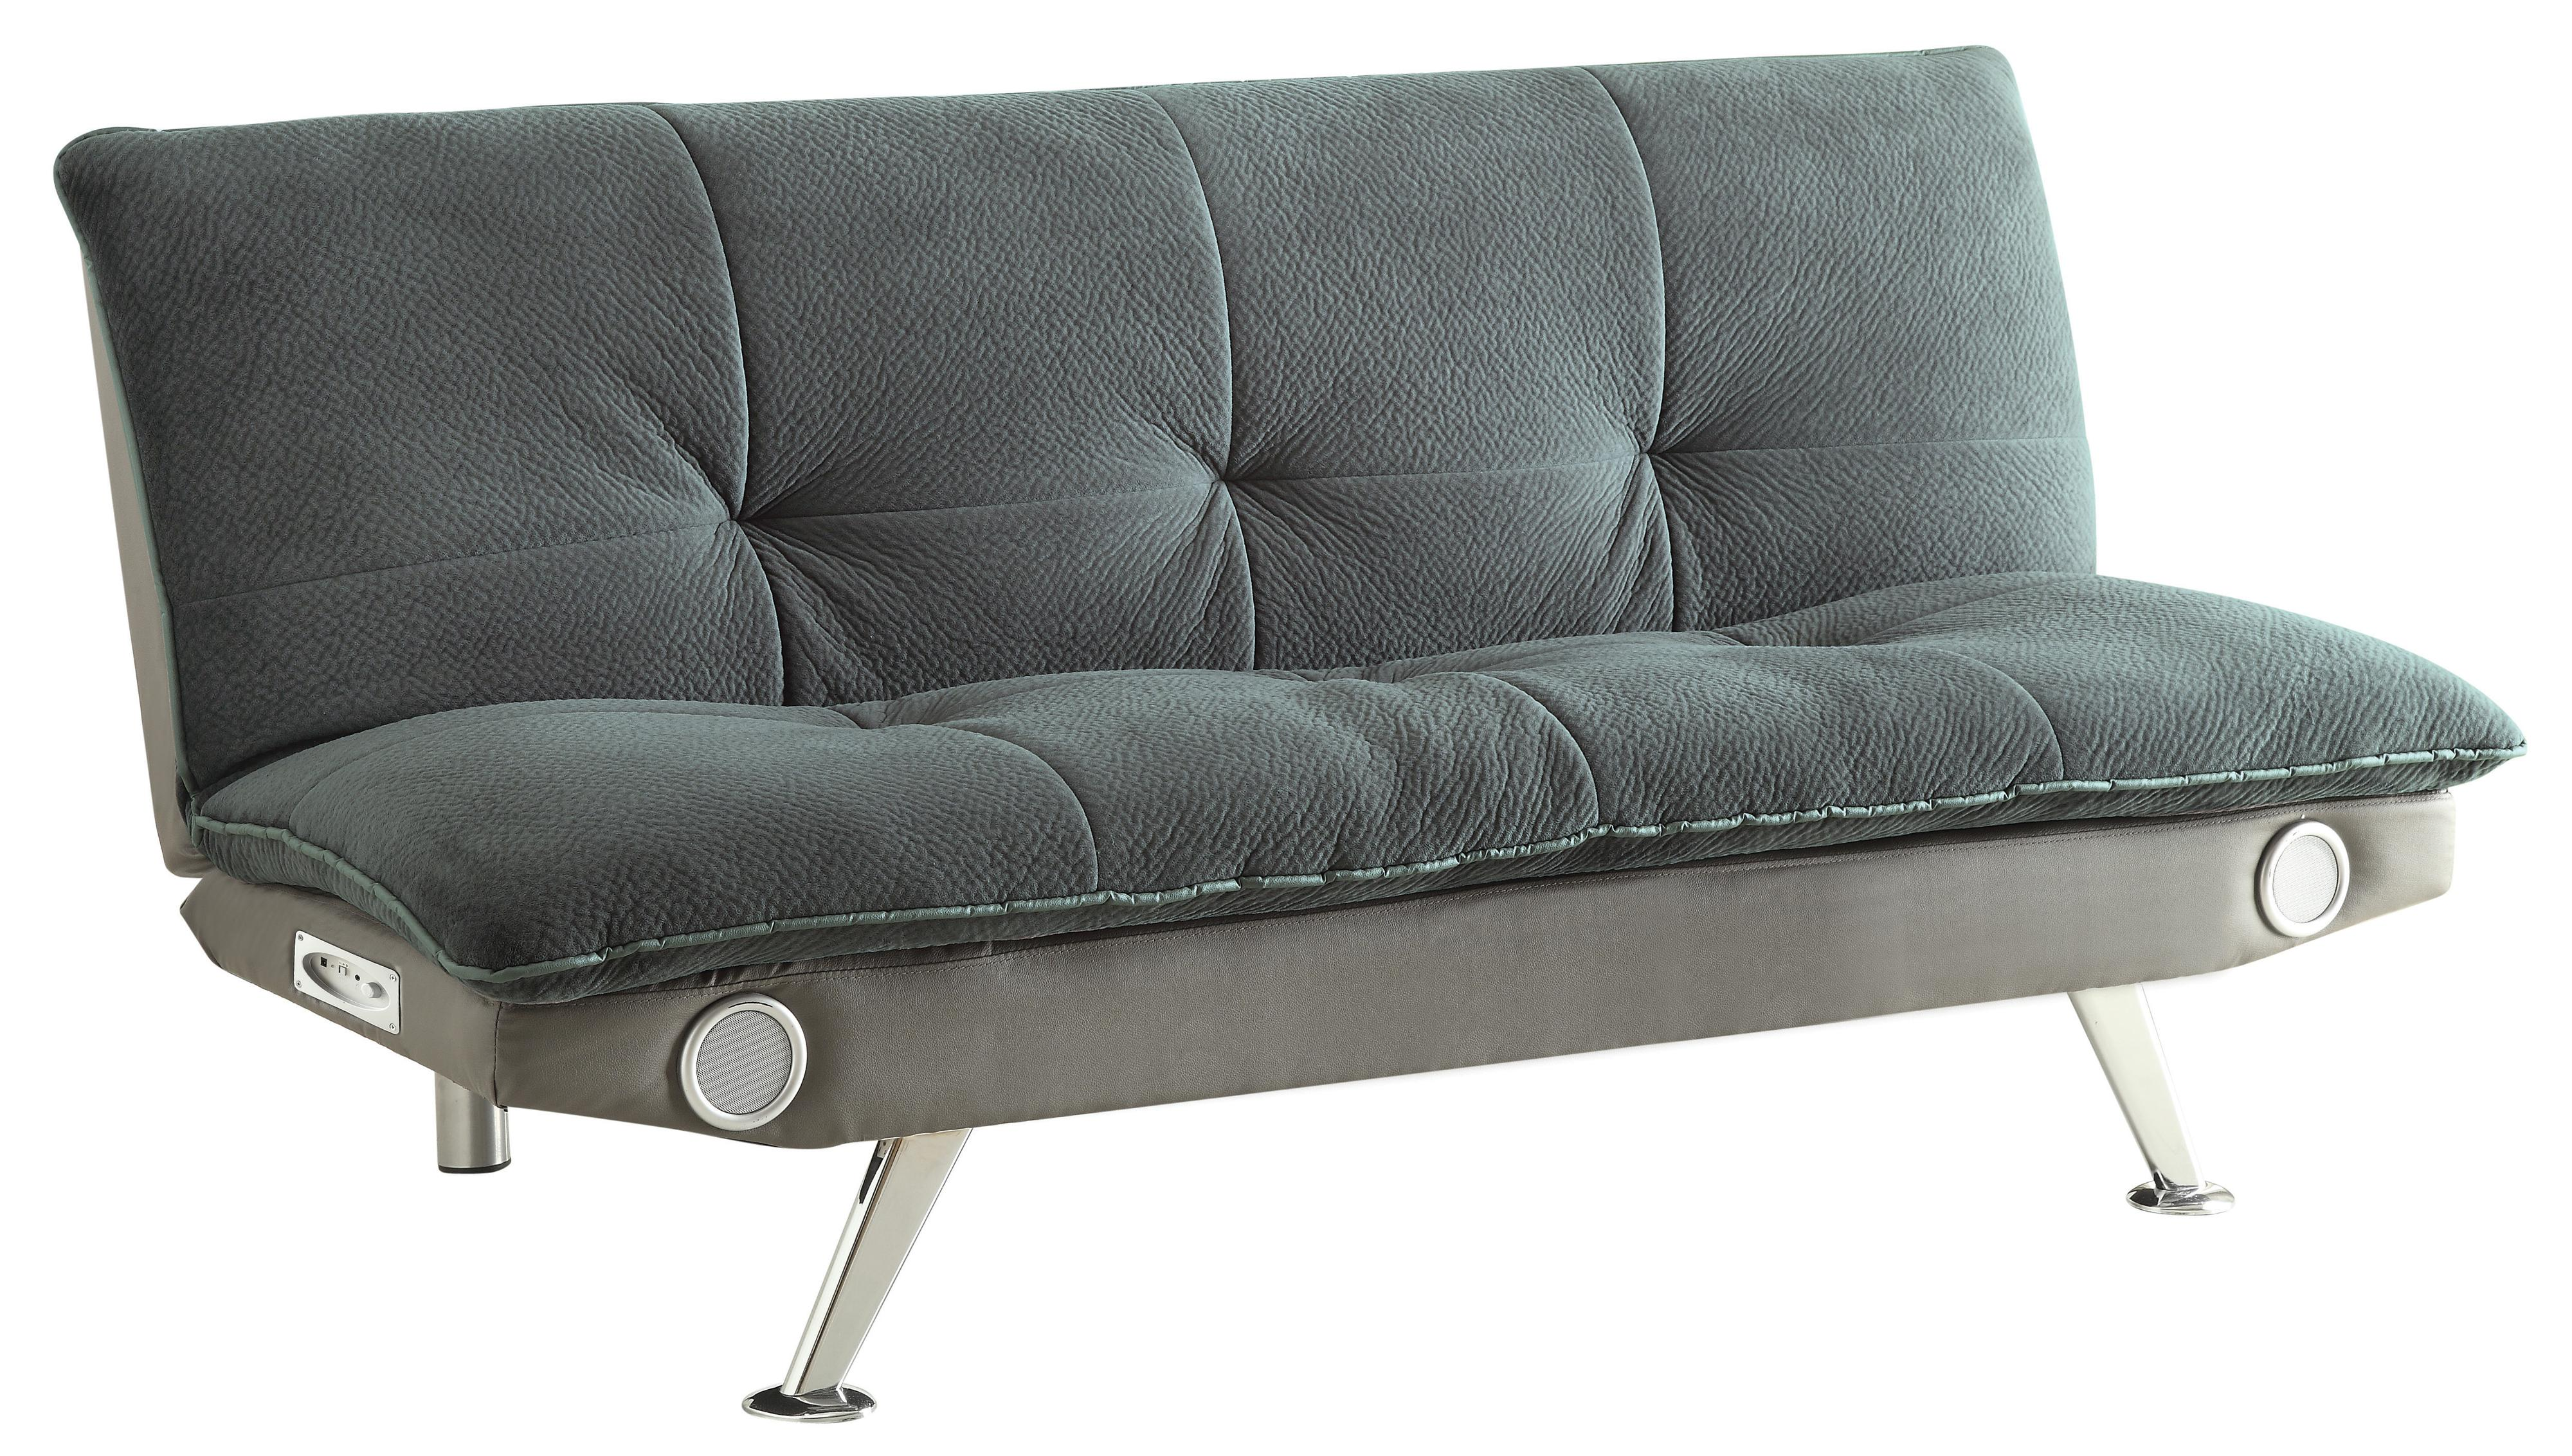 Coaster Sofa Beds and Futons -  Sofa Bed with Built-In Bluetooth Speakers - Item Number: 500046